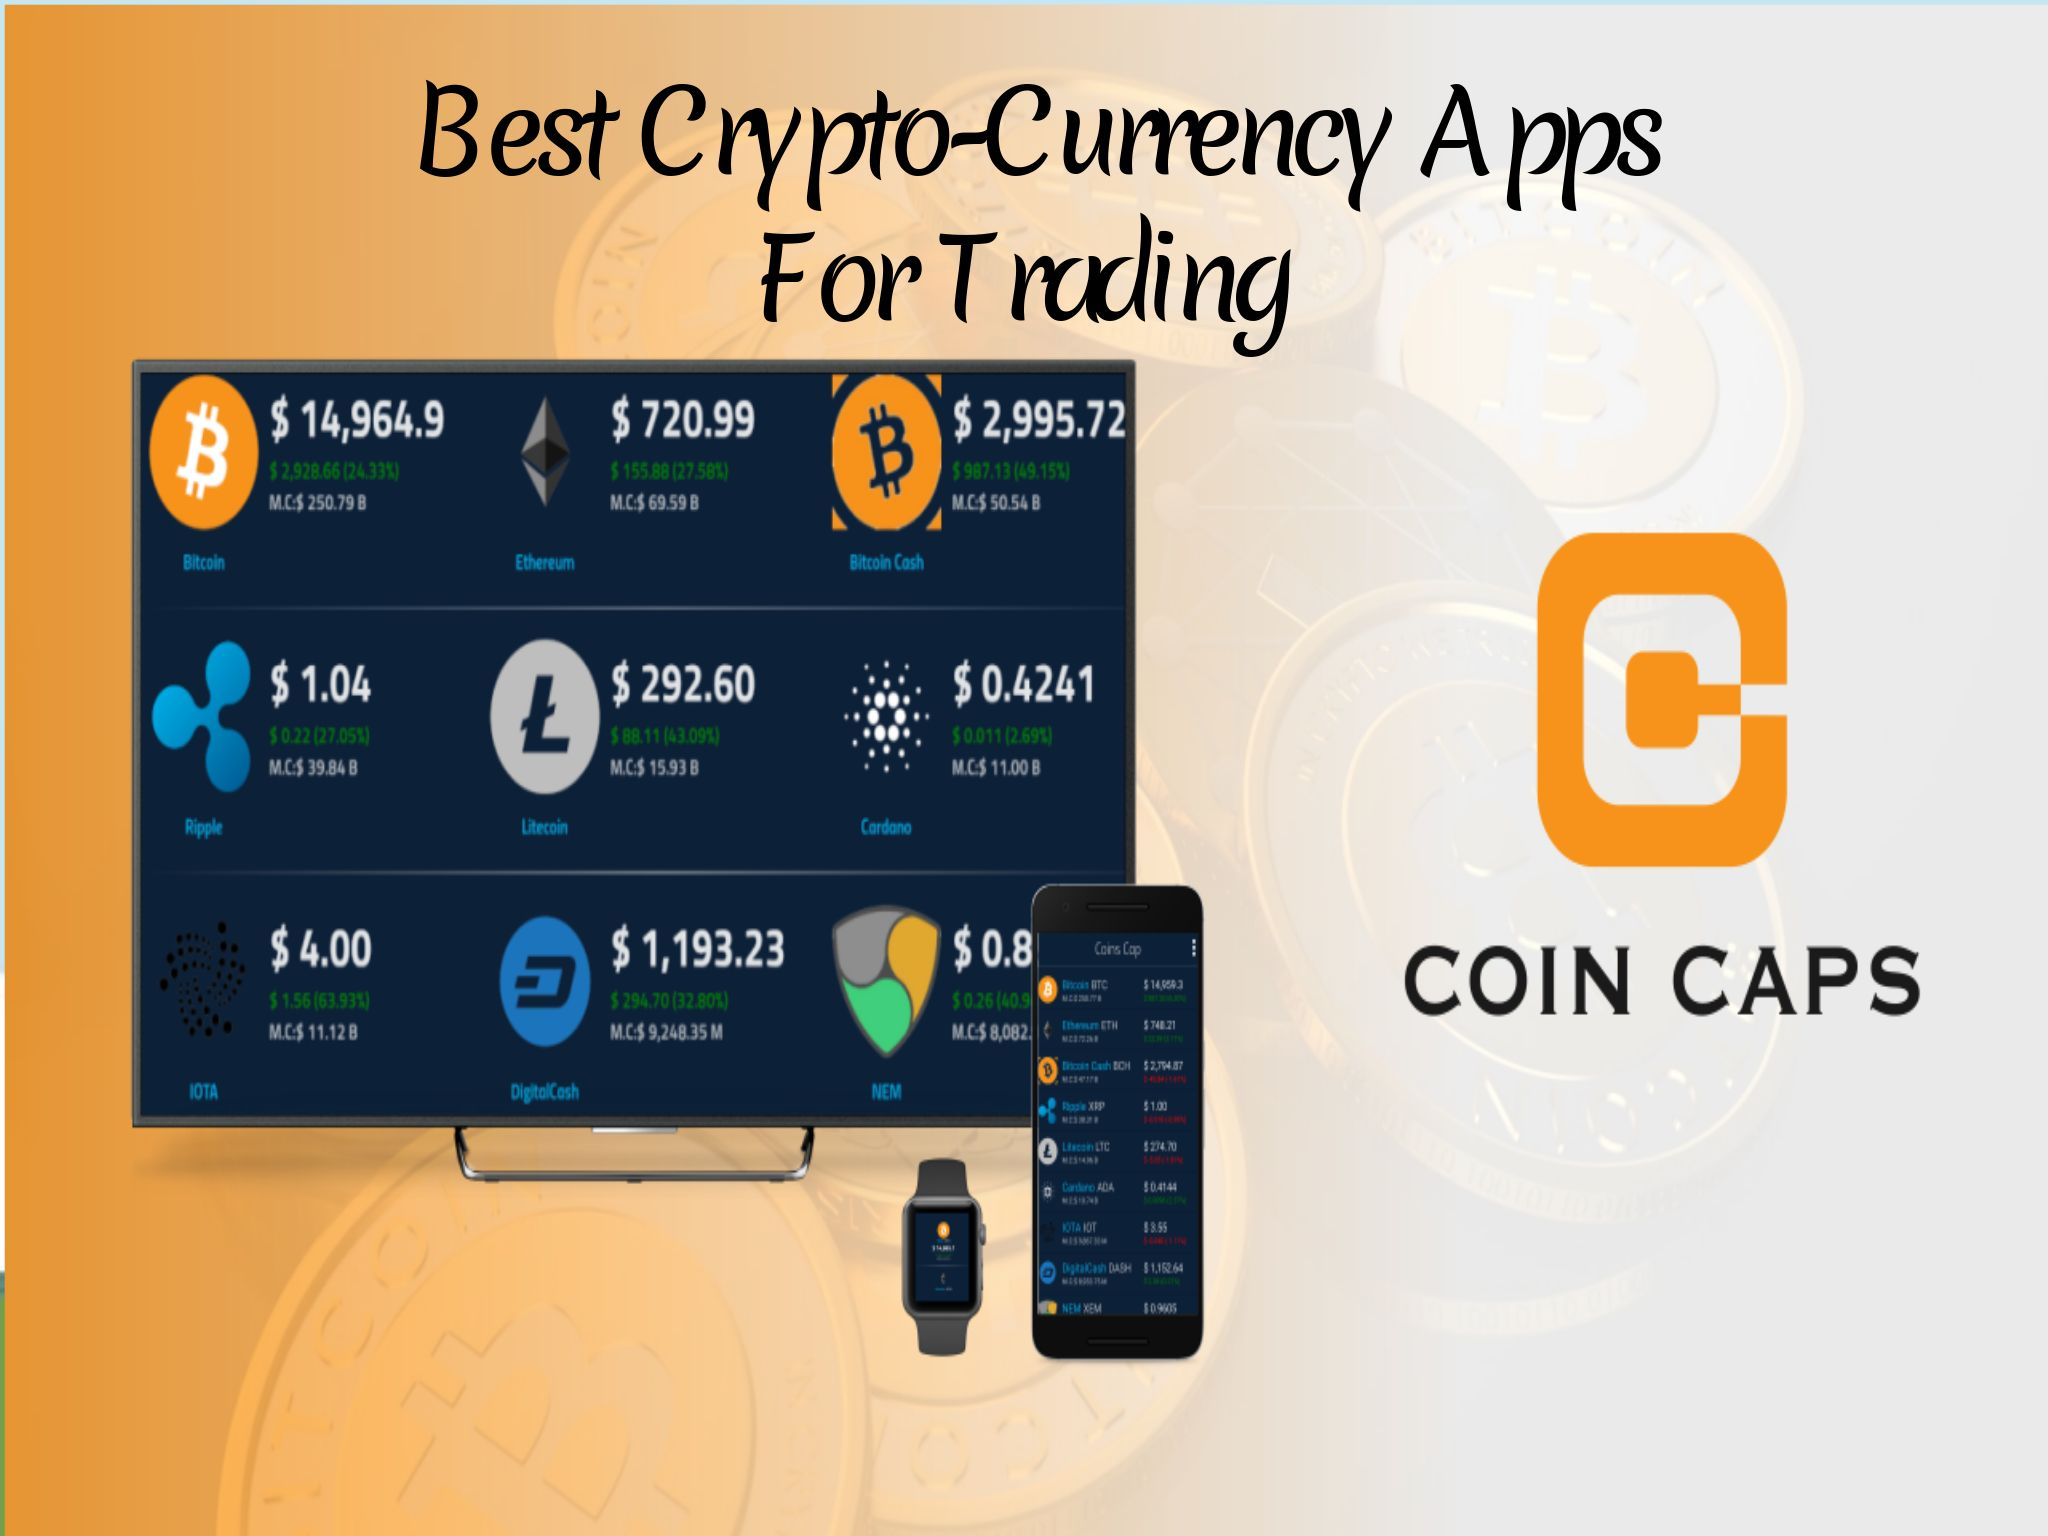 a32c7afd2fe Coin Cap Market - Top Crypto Coin Market Cap Price Features... - Top Crypto  Currency (Favourite your Coin) - Trending News on Blockchain - Podcast for  the ...